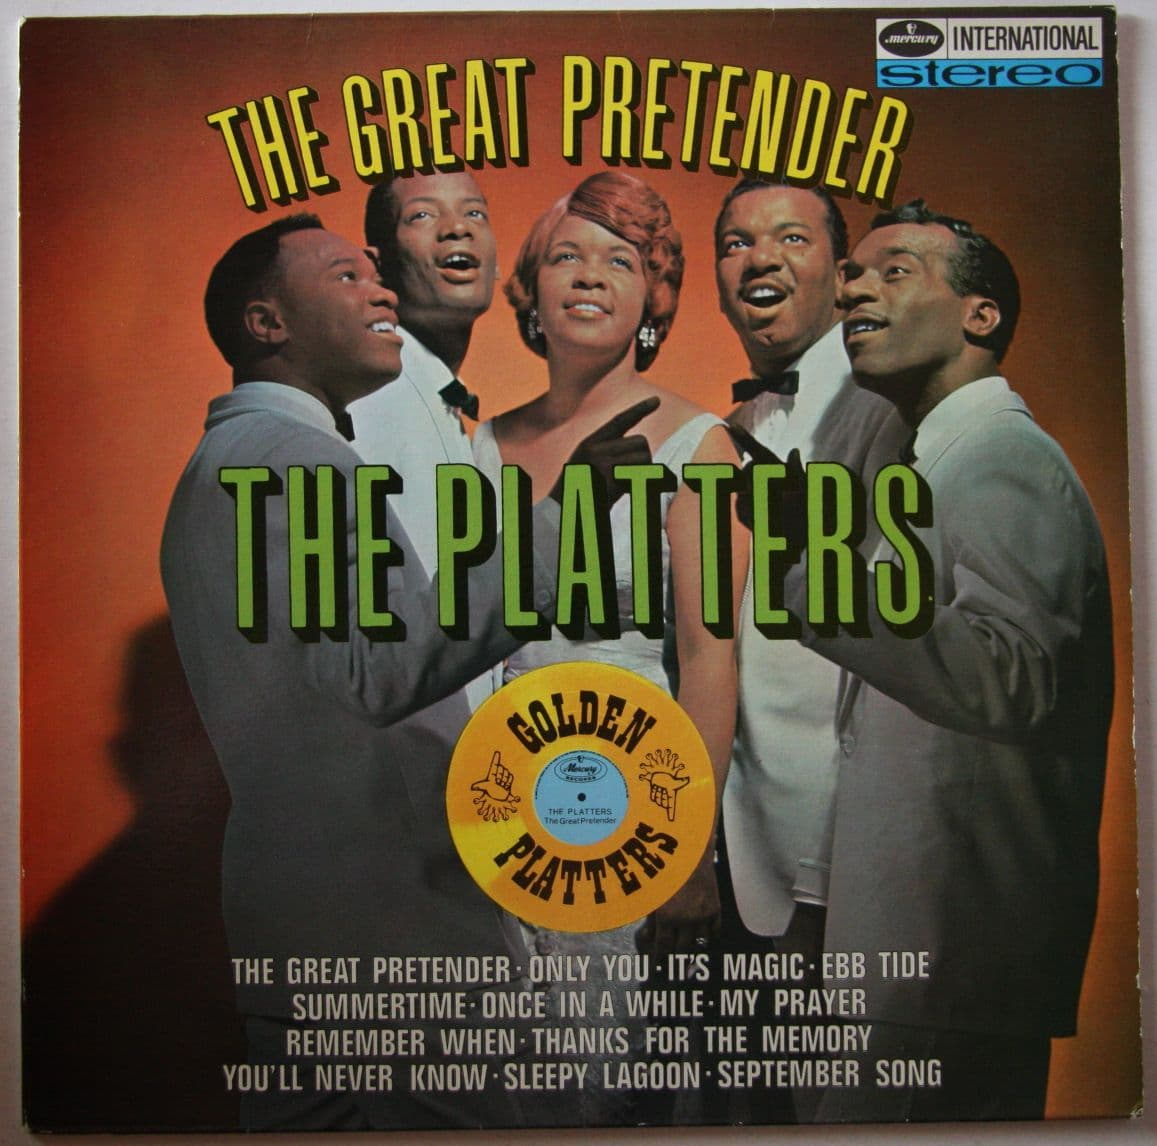 The Platters Quot The Great Pretender Quot 171 American Songwriter